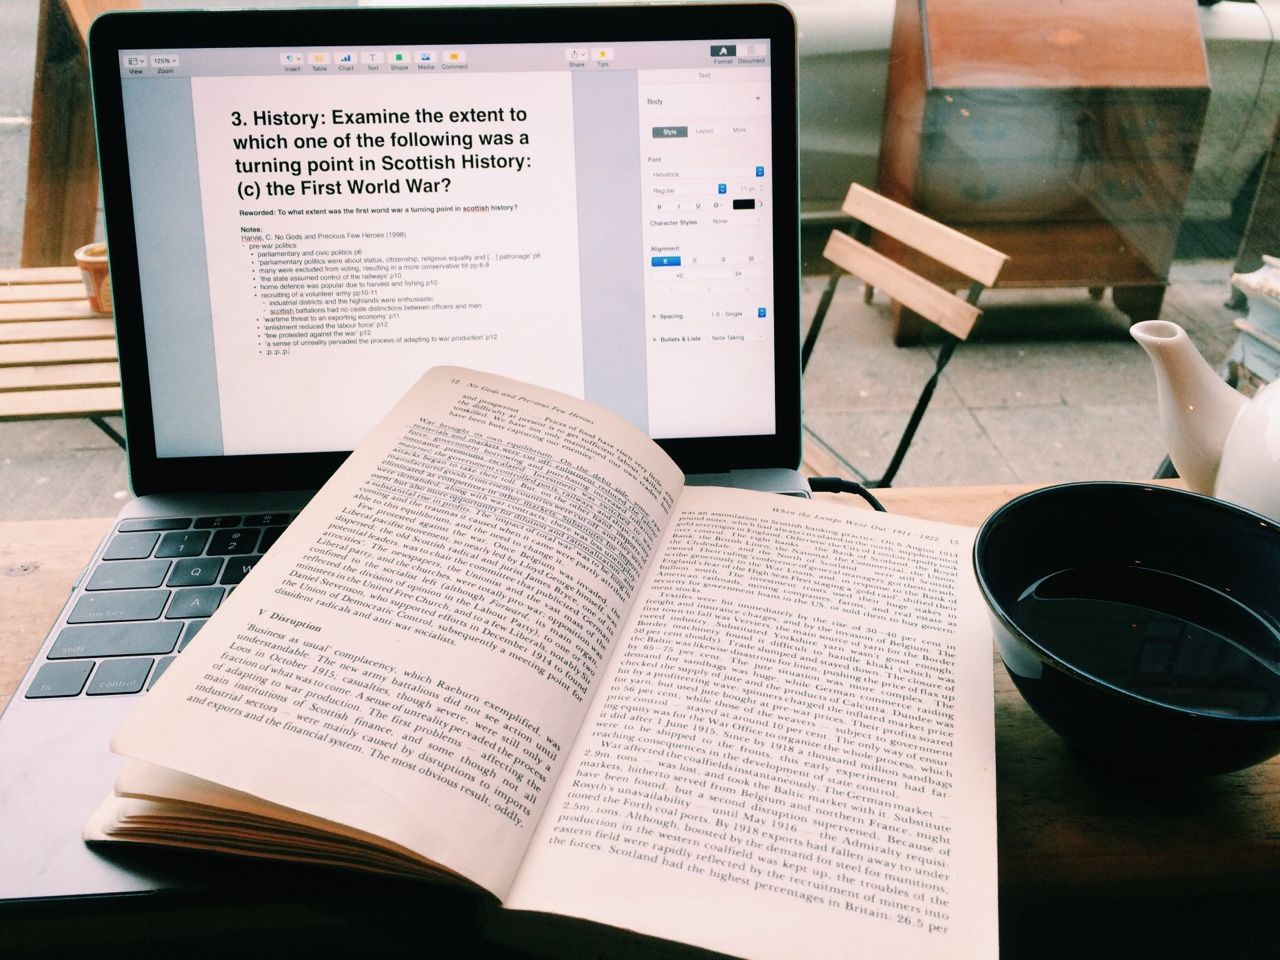 College Application Essay Writing Help Successful, Papers Writing in Britain - blogger.com